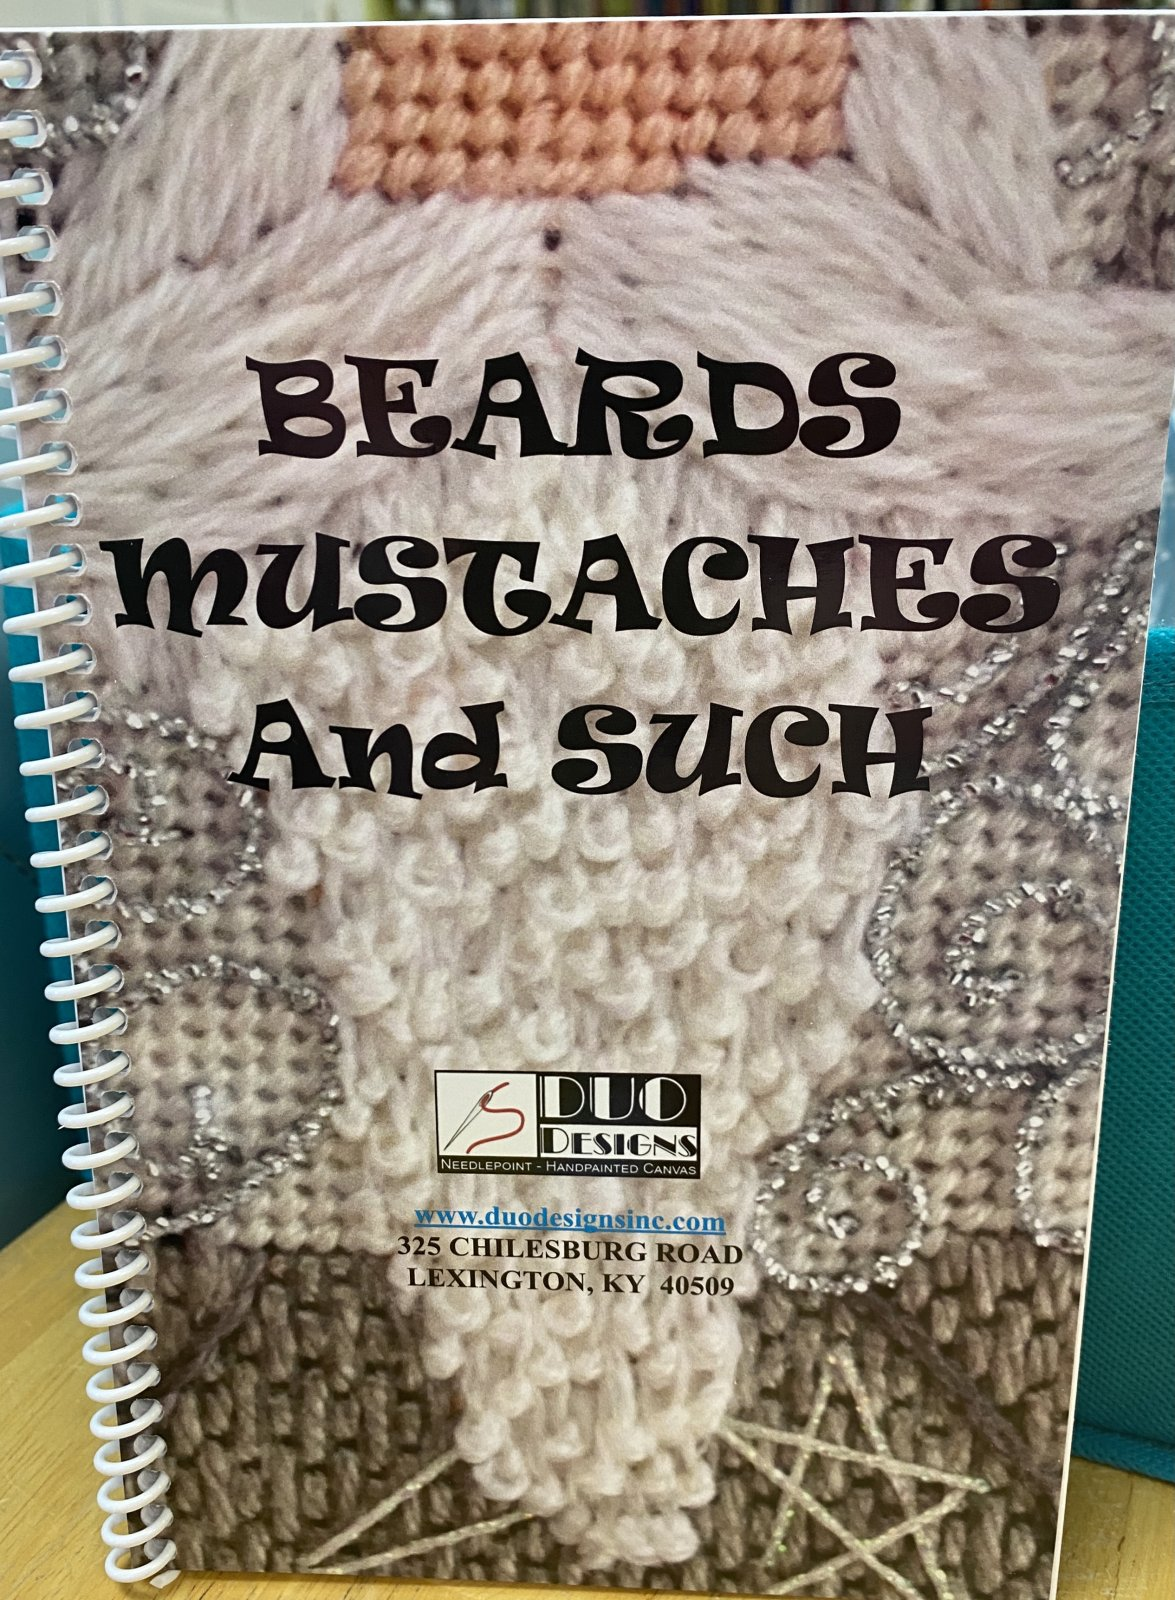 beards, mustaches & such